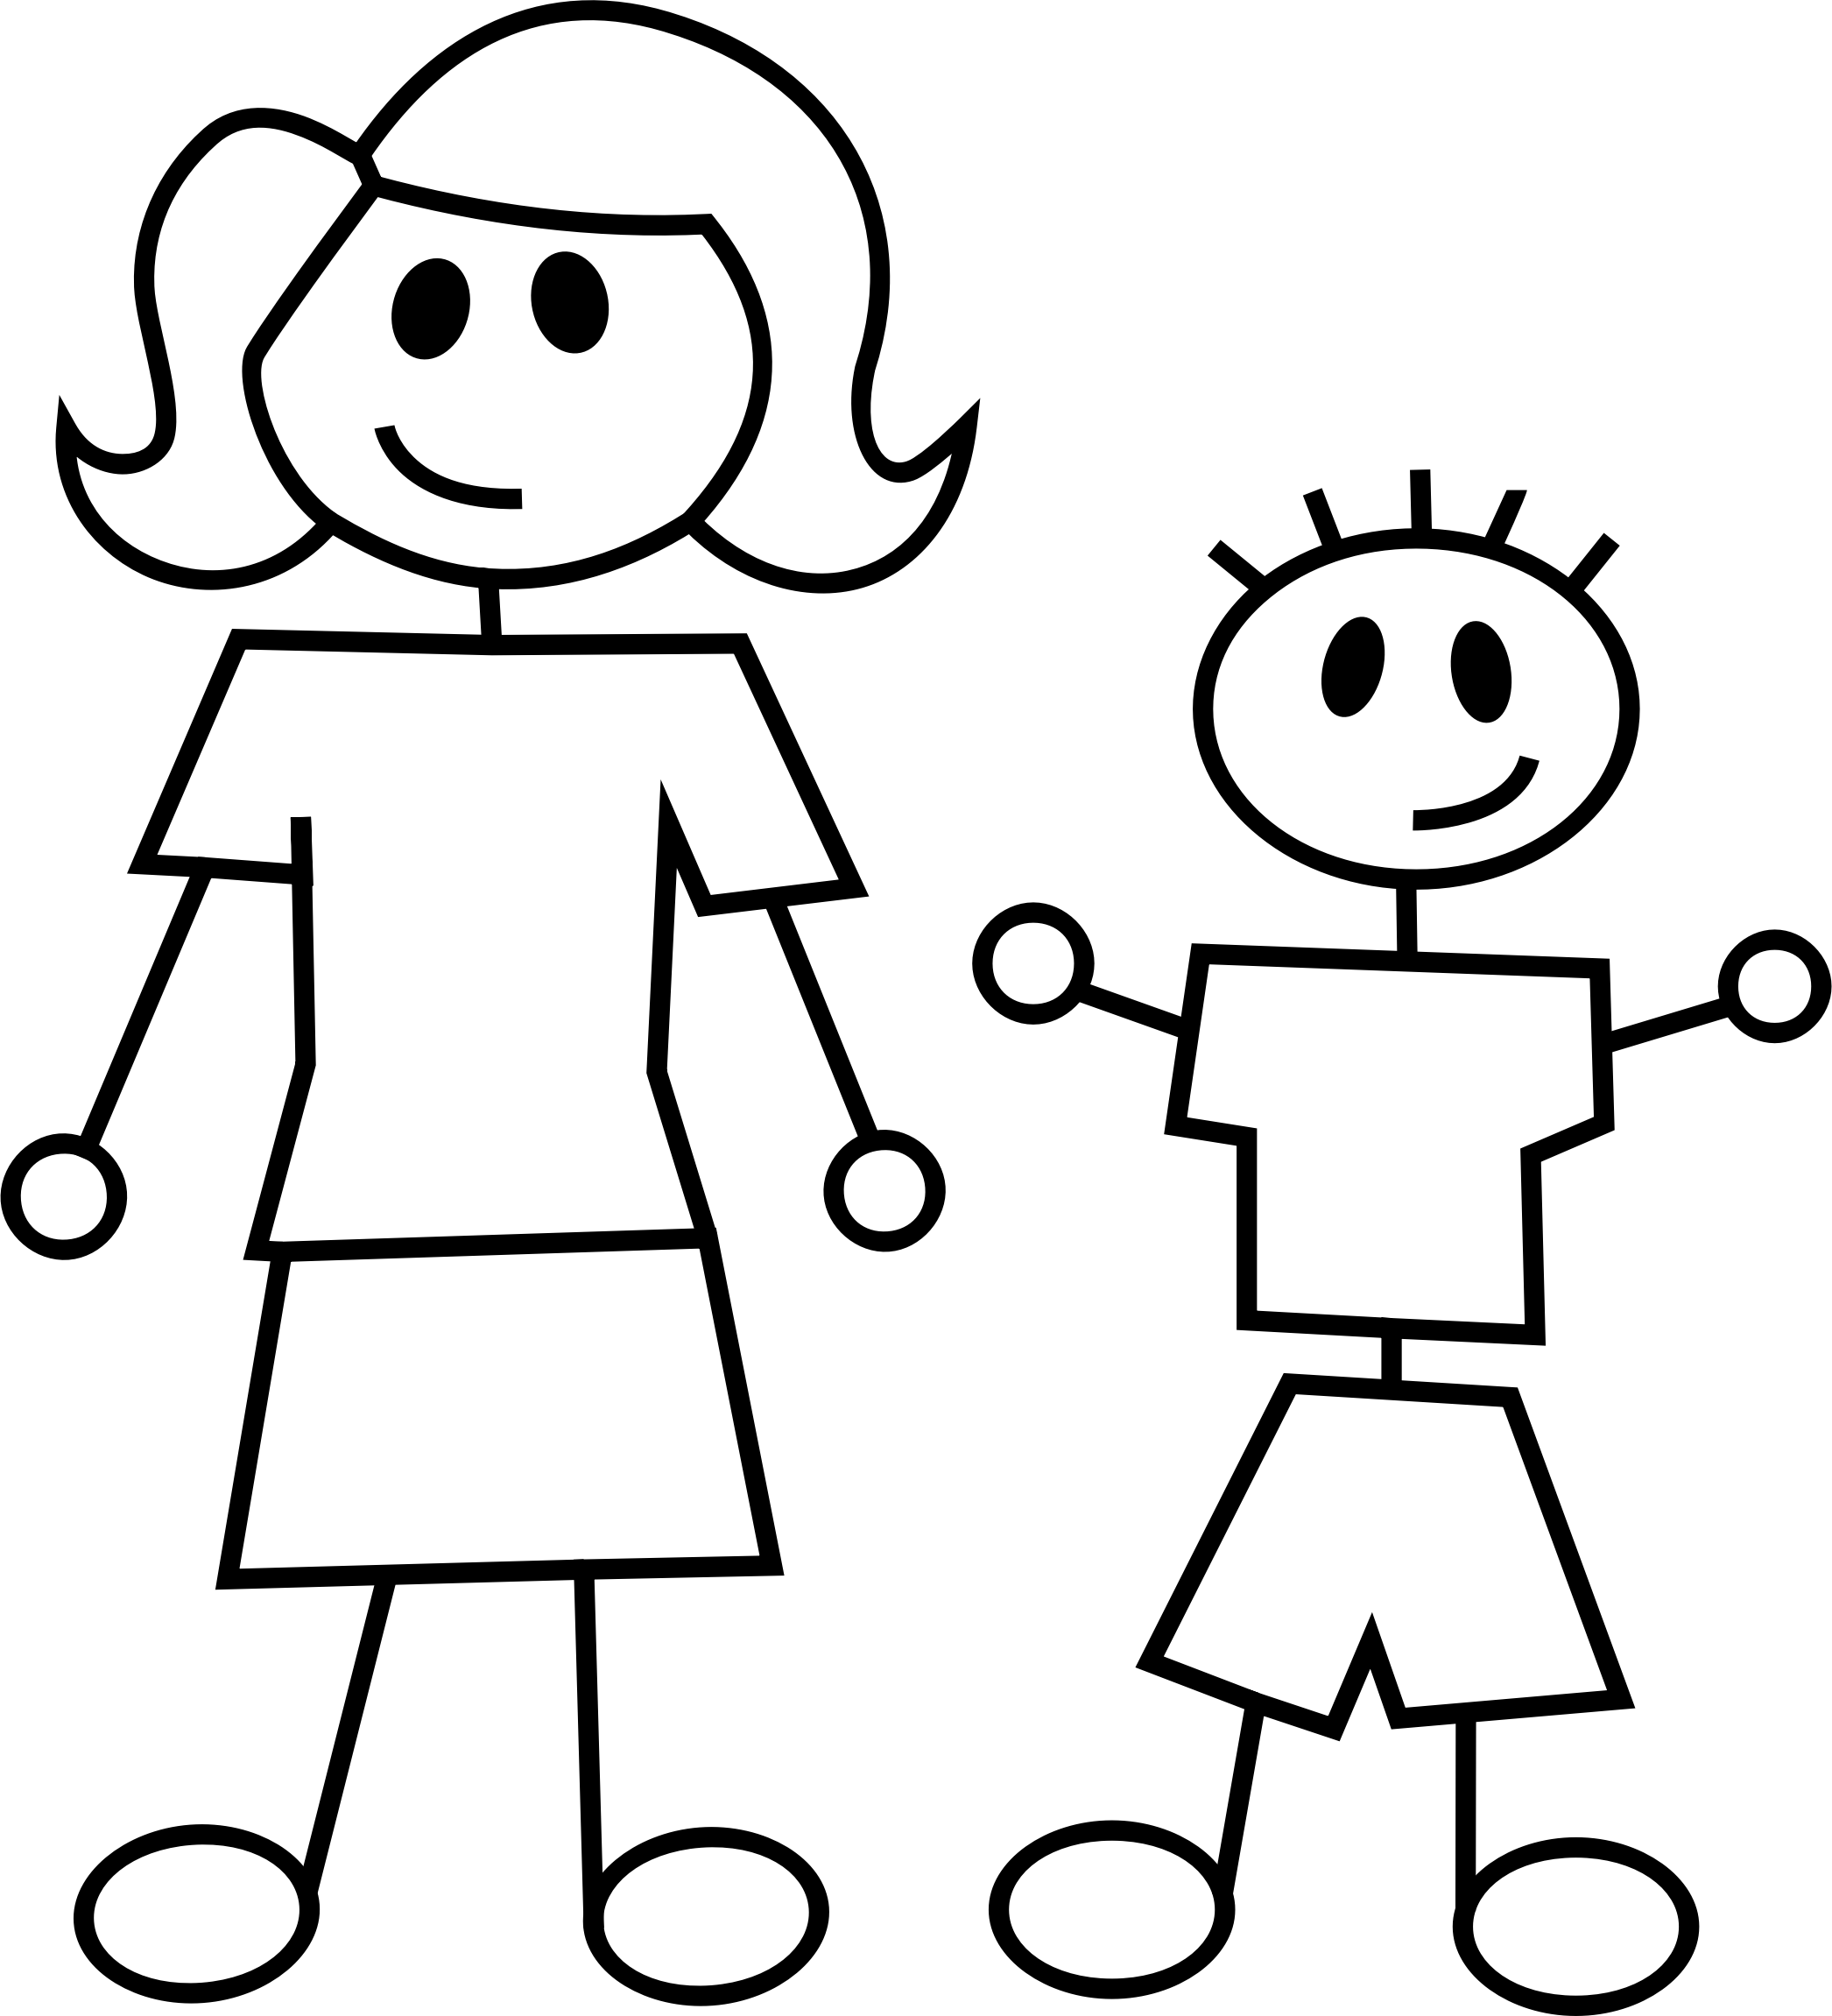 Mom Clipart Black And White Mom Black And White